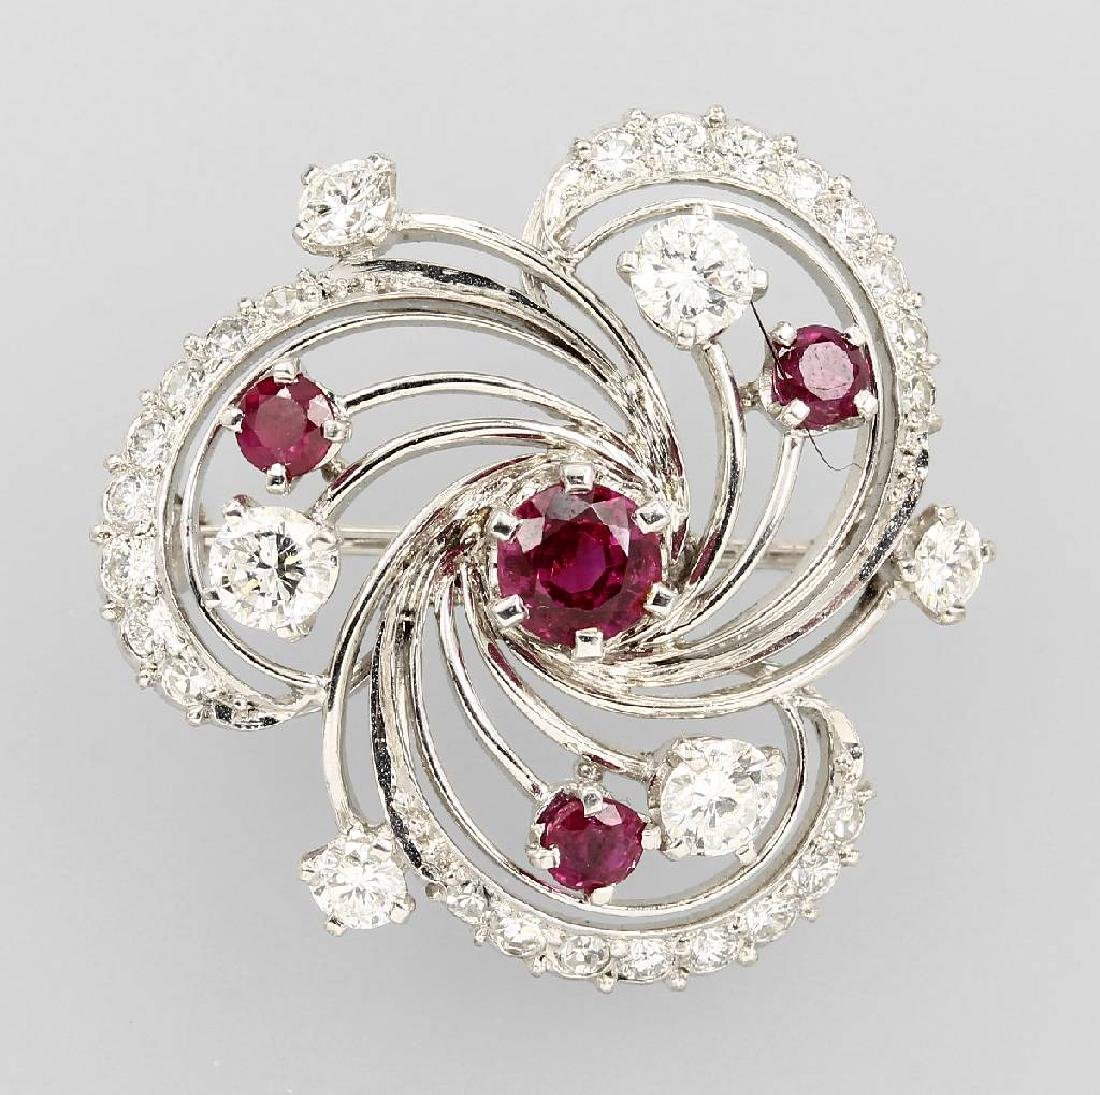 18 kt gold brooch with rubies and brilliants